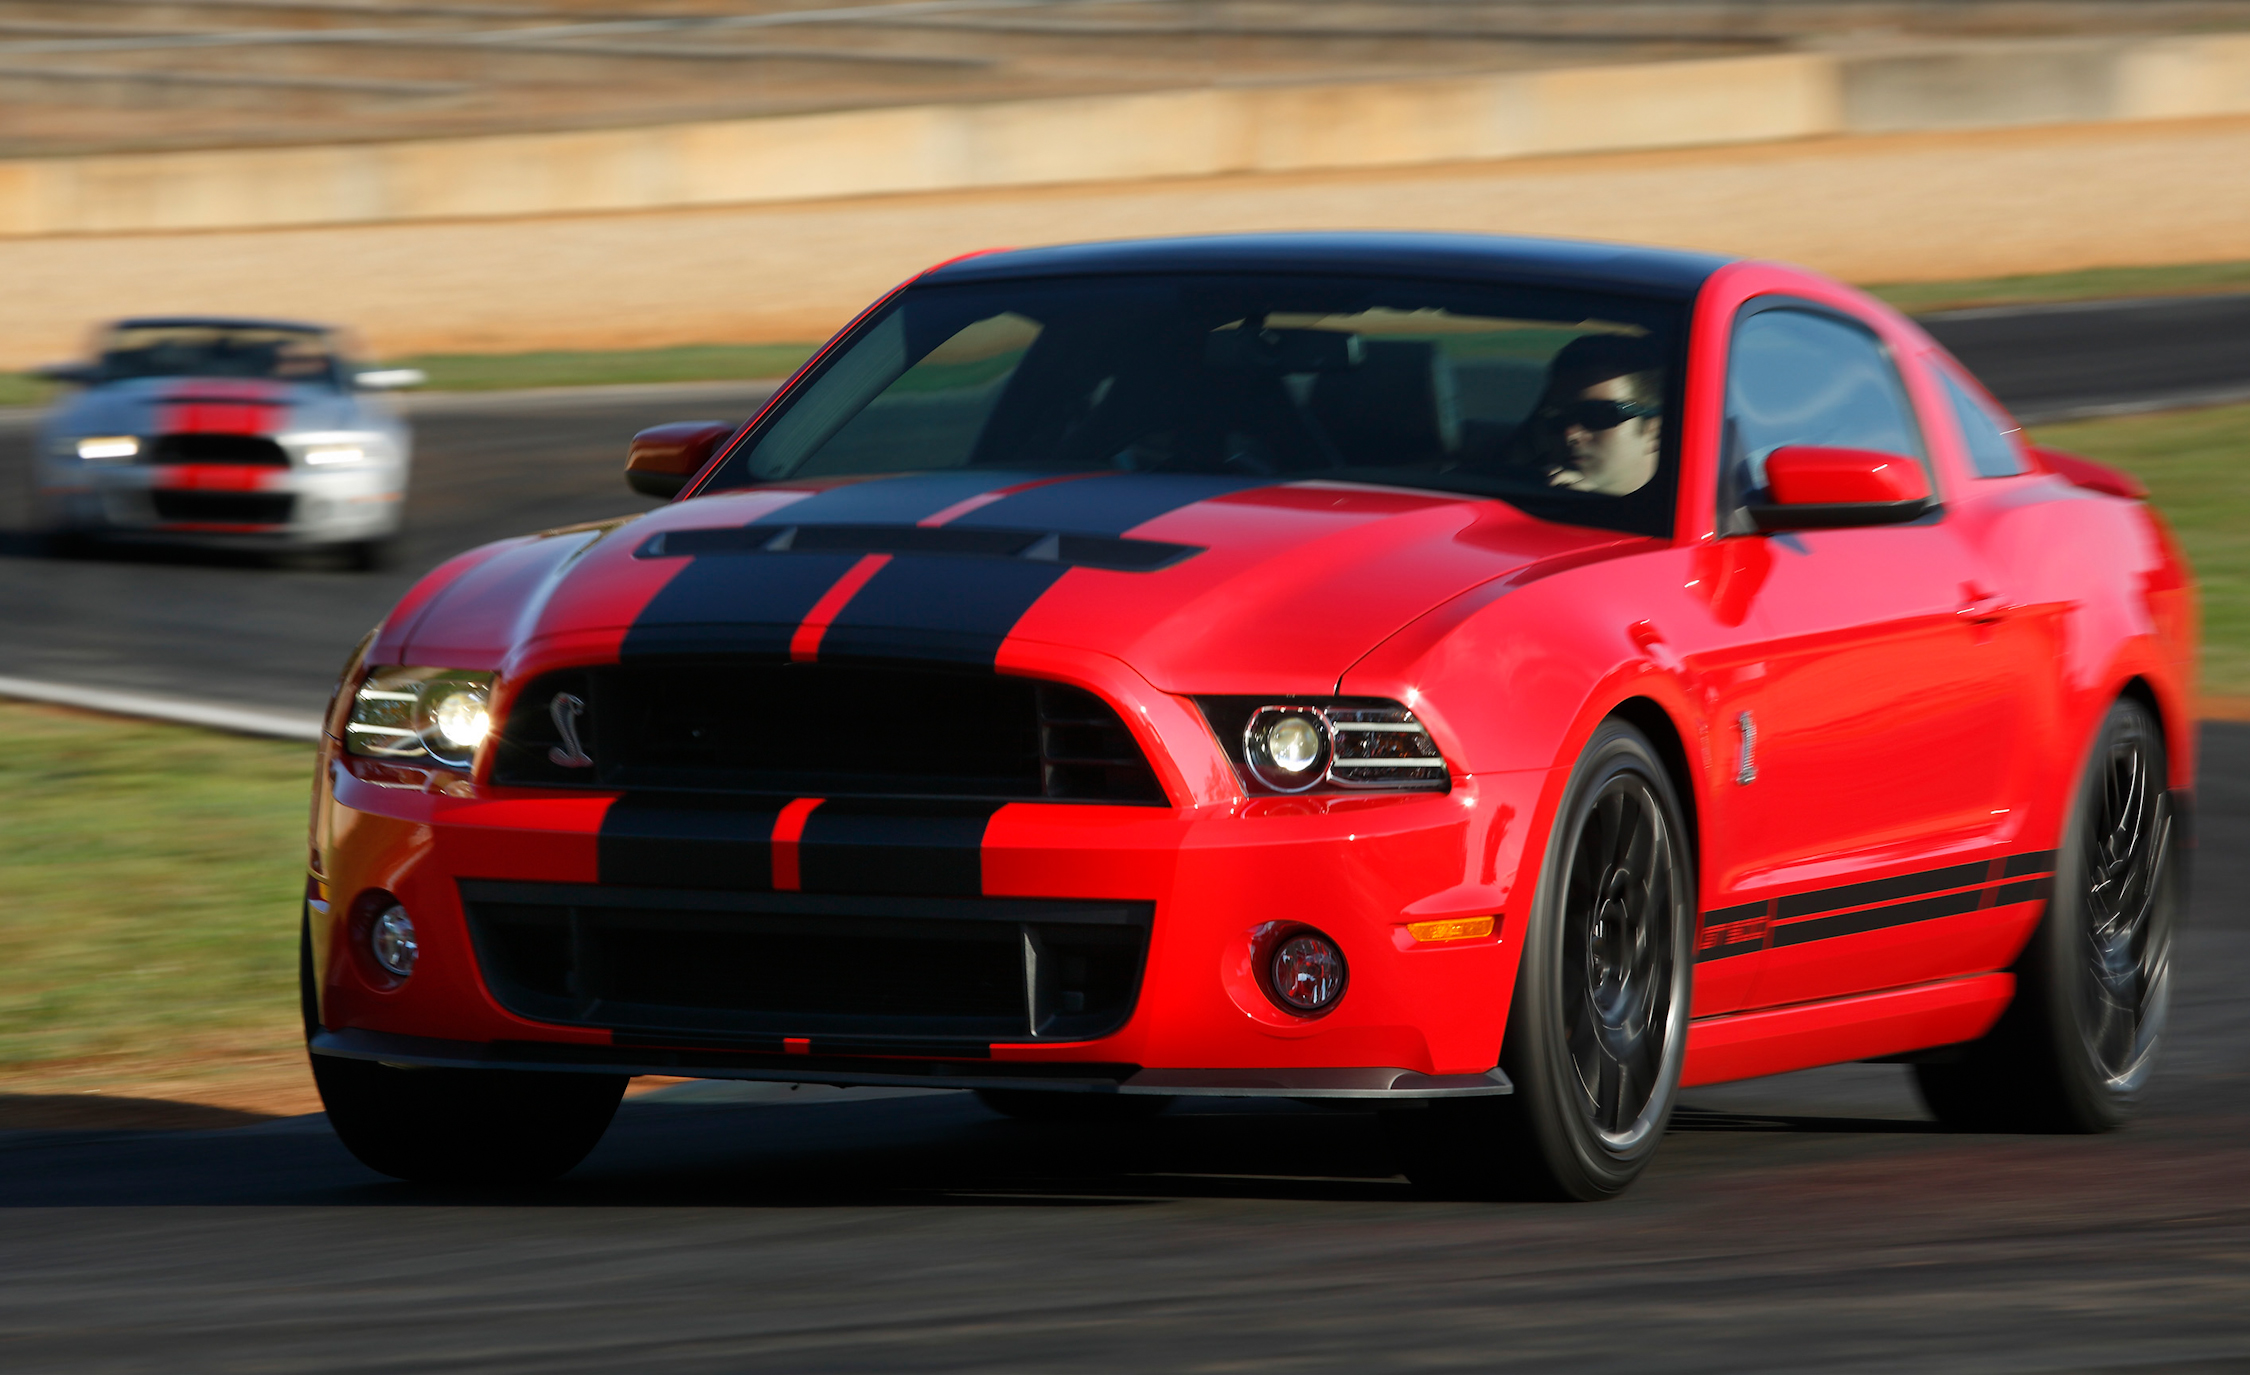 2013 Ford Mustang Shelby GT500 Red Test Drive Circuit (View 45 of 47)